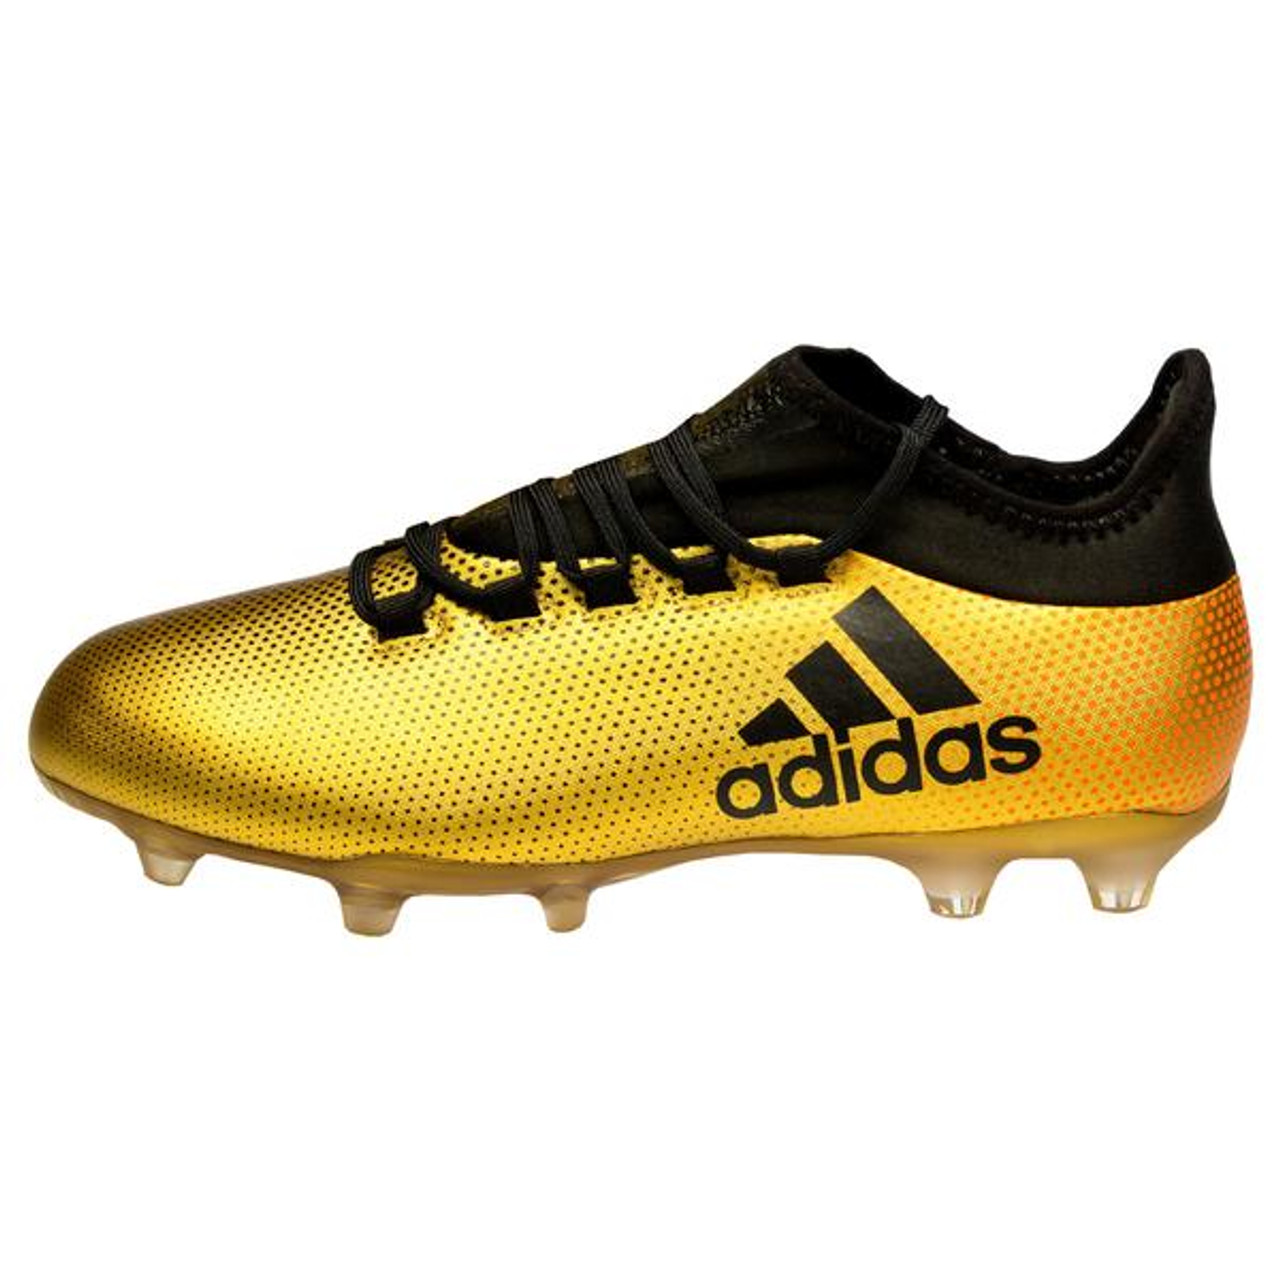 the latest 62ed9 70761 Adidas X 17.2 FG Mens Soccer Cleats CP9186 - Gold, Black, ...